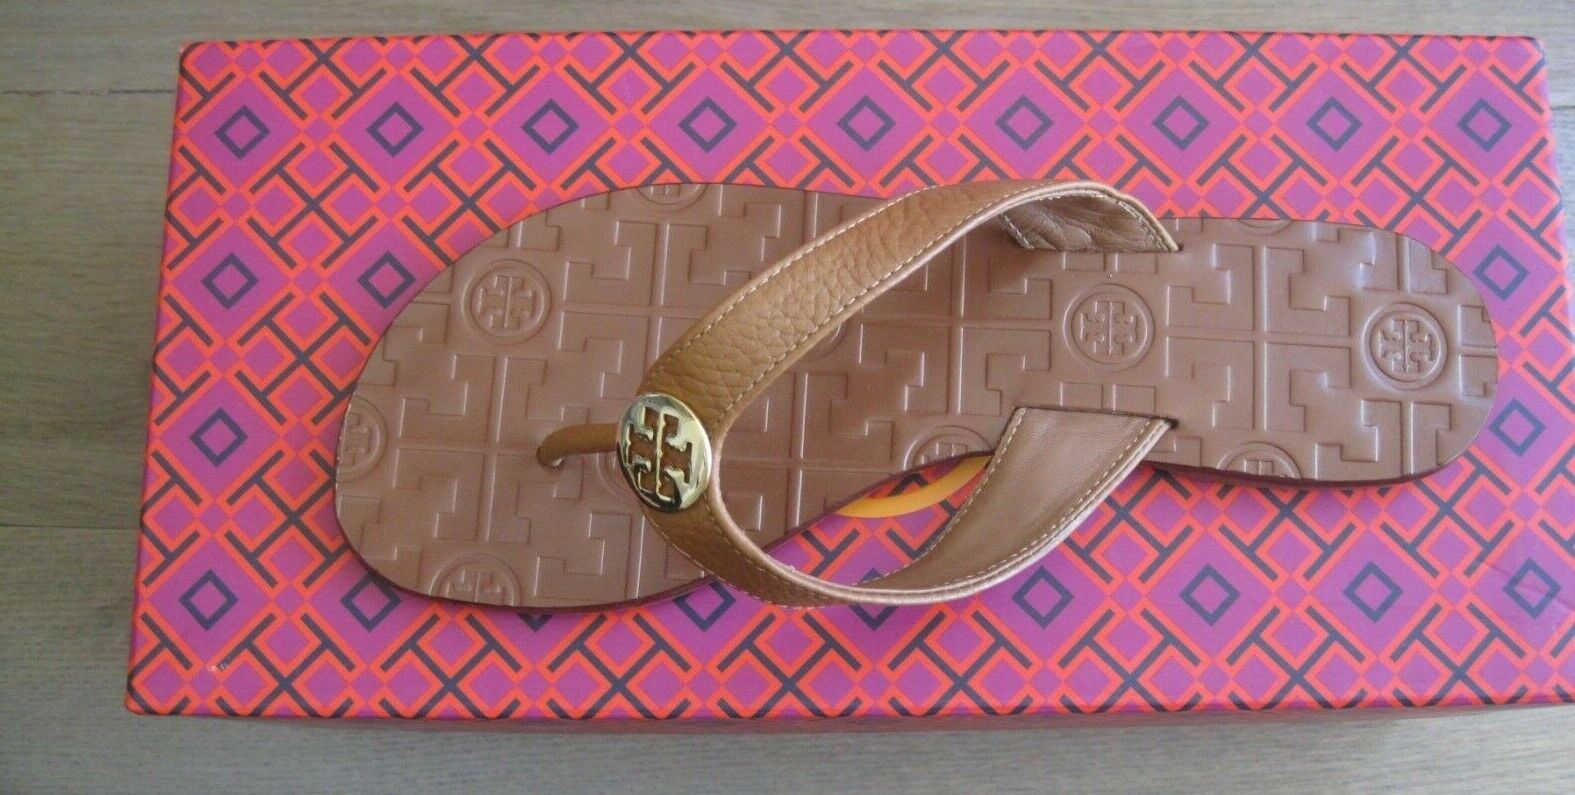 BRAND NEW TORY BURCH THORA THONG ROYAL TAN NEW IN THE BOX SIZE 5